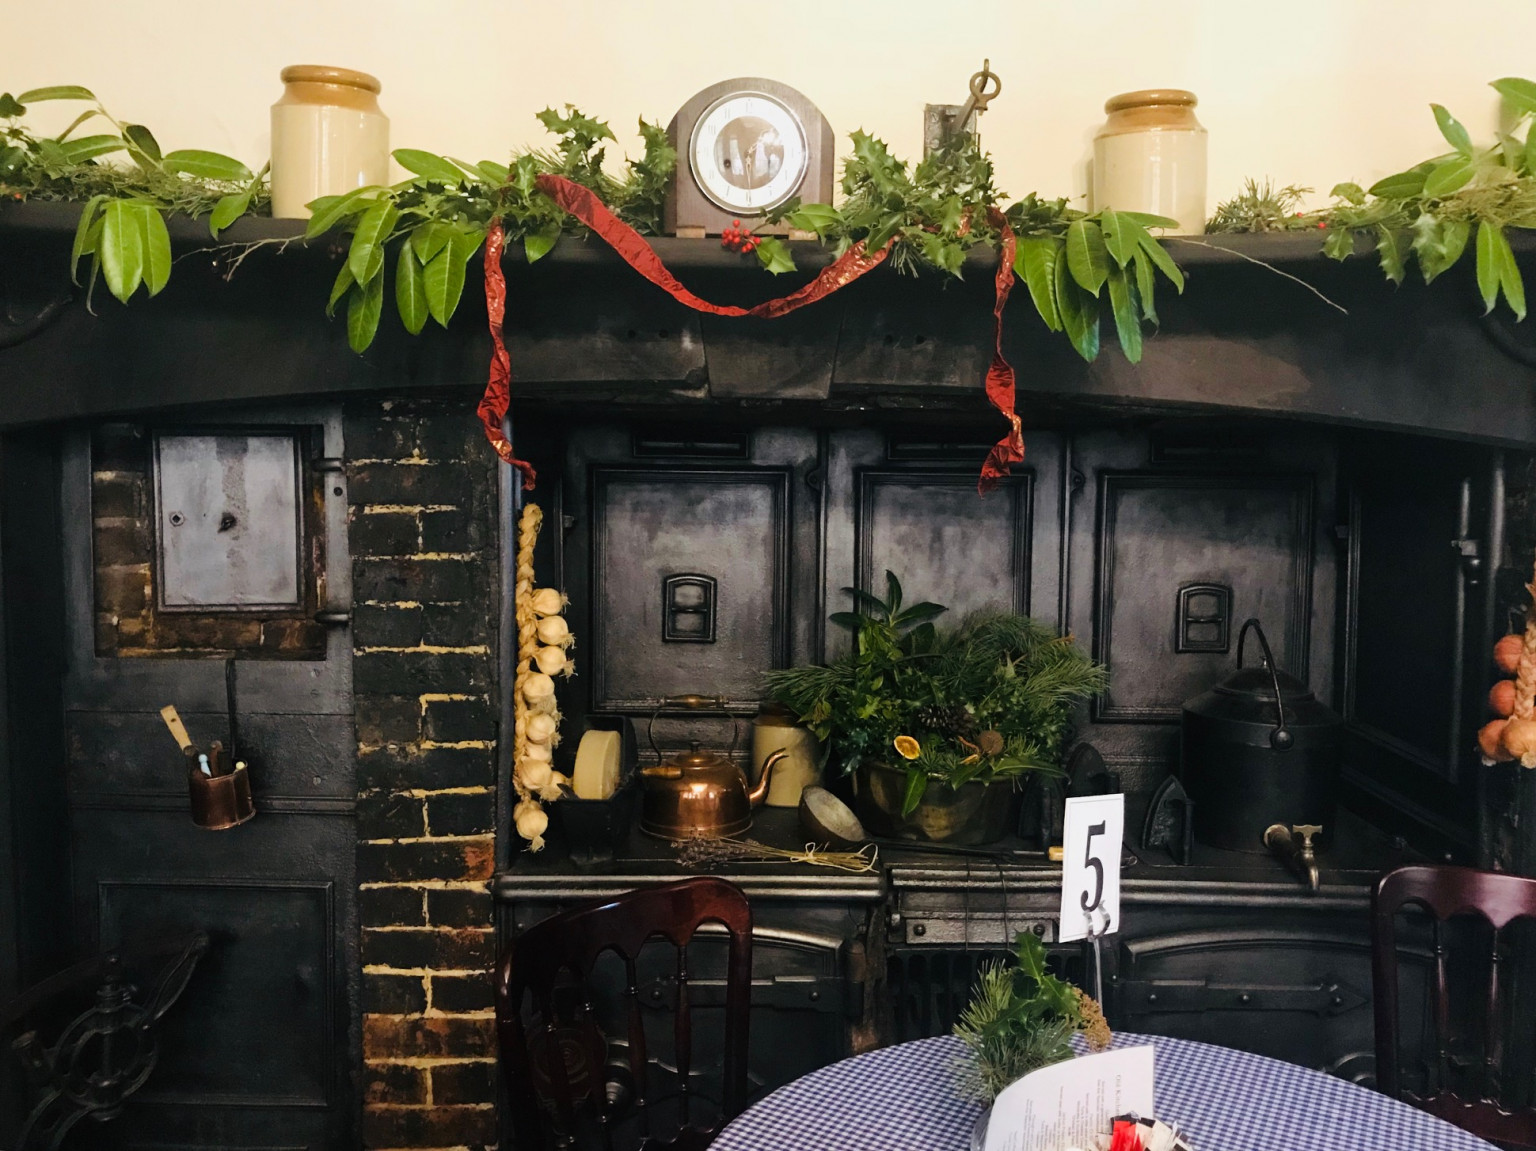 The Old Kitchen Tearoom festive decorations